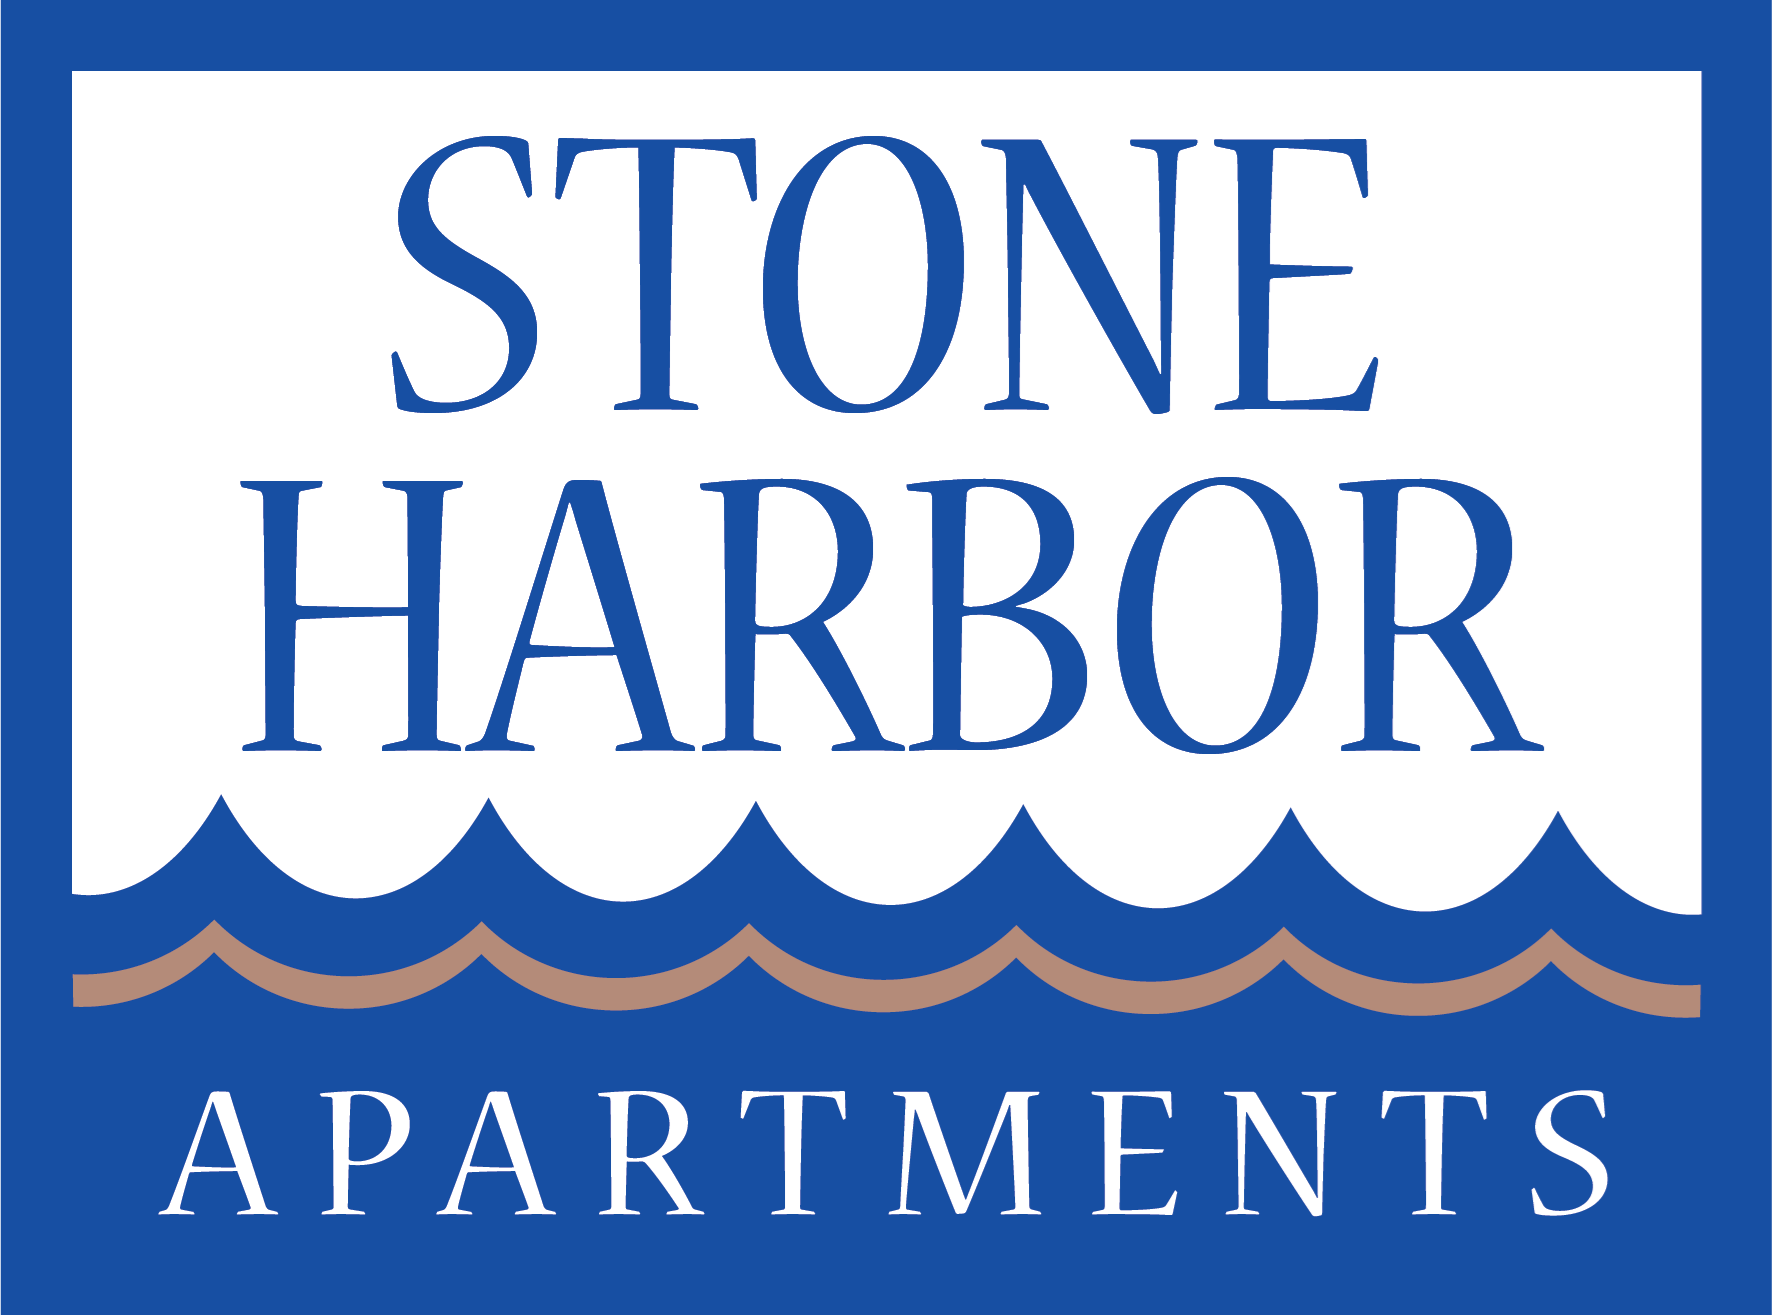 Stone Harbor Apartments for rent in Panama City, FL. Make this community your new home or visit other ConcordRENTS communities at ConcordRENTS.com. Logo